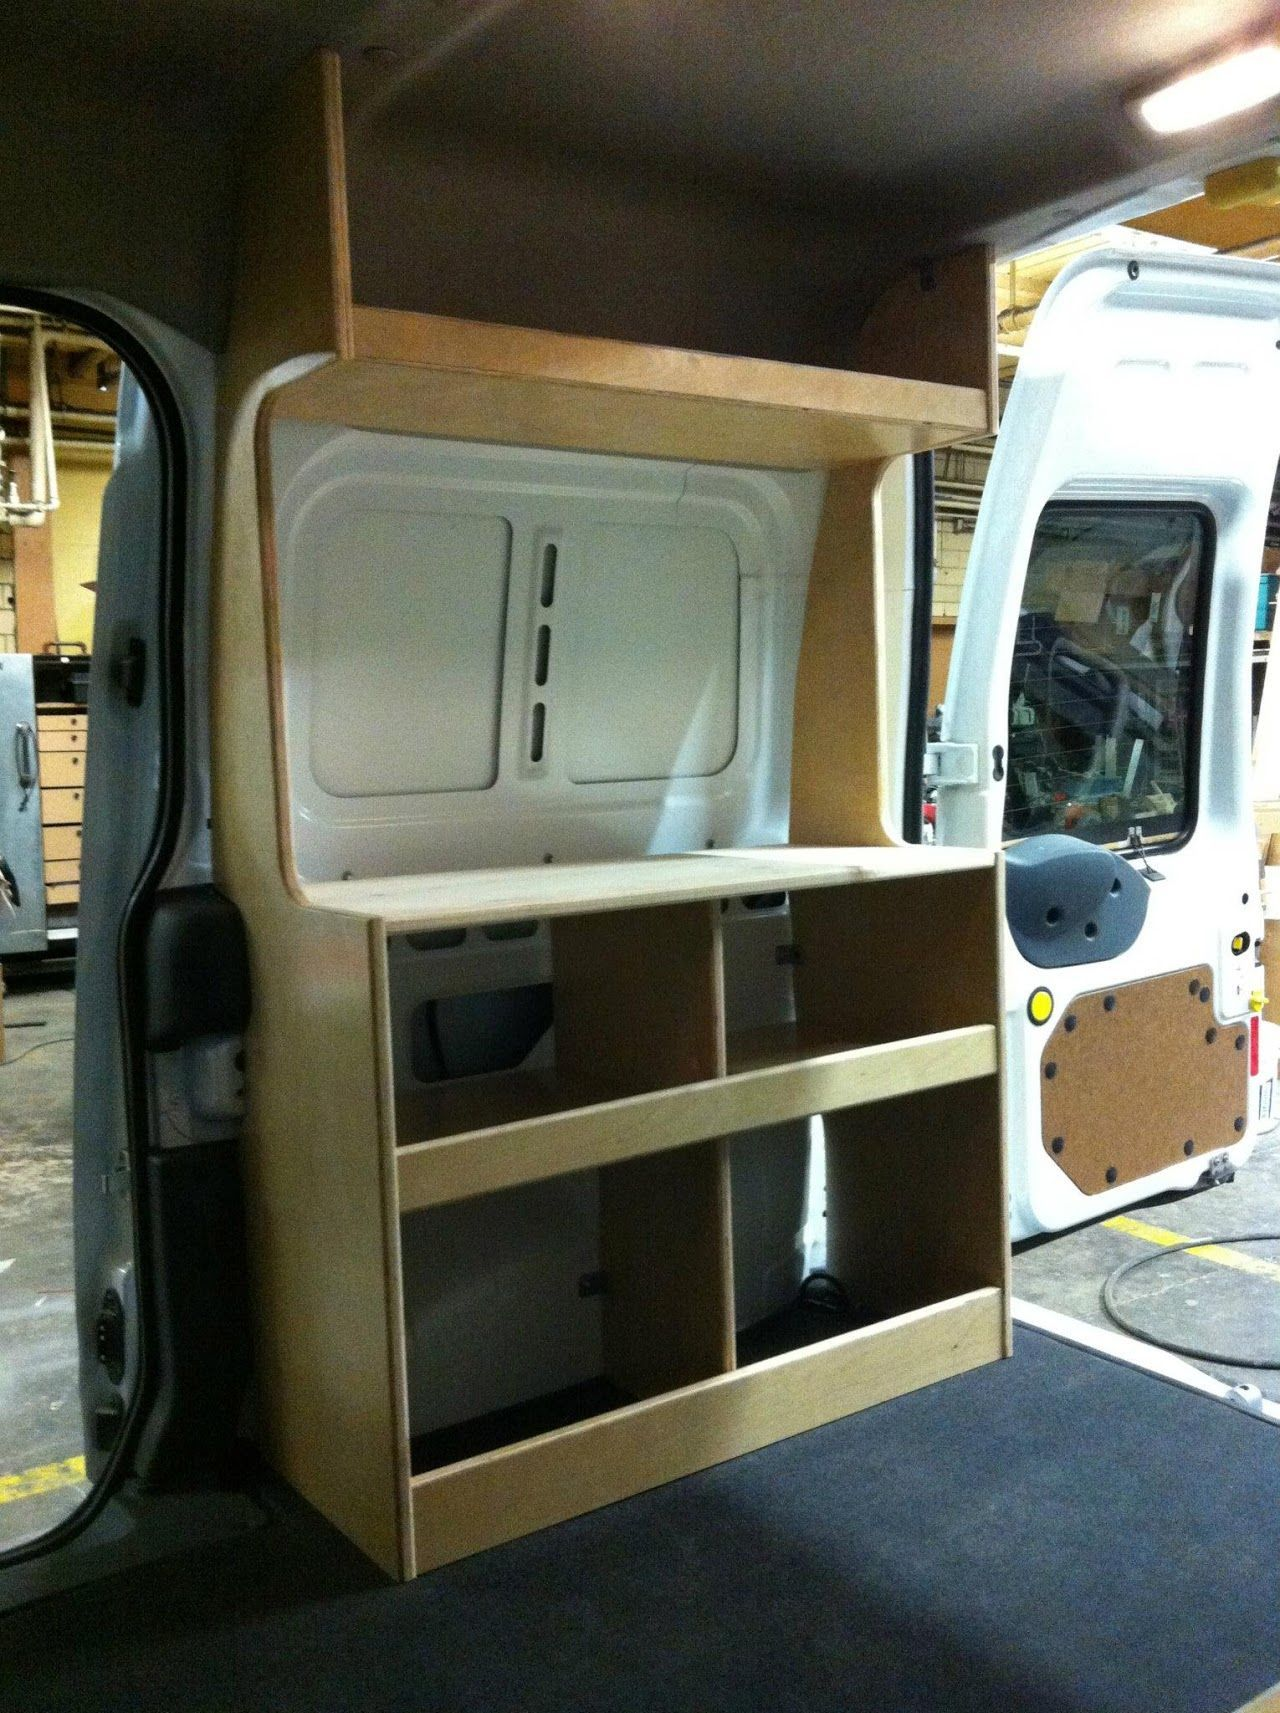 Diy Mobile Camper Turn A Rusty Van Into A Comfy Home In 5 Amenagement Camping Car Amenagement Camionnette Amenagement Jumpy